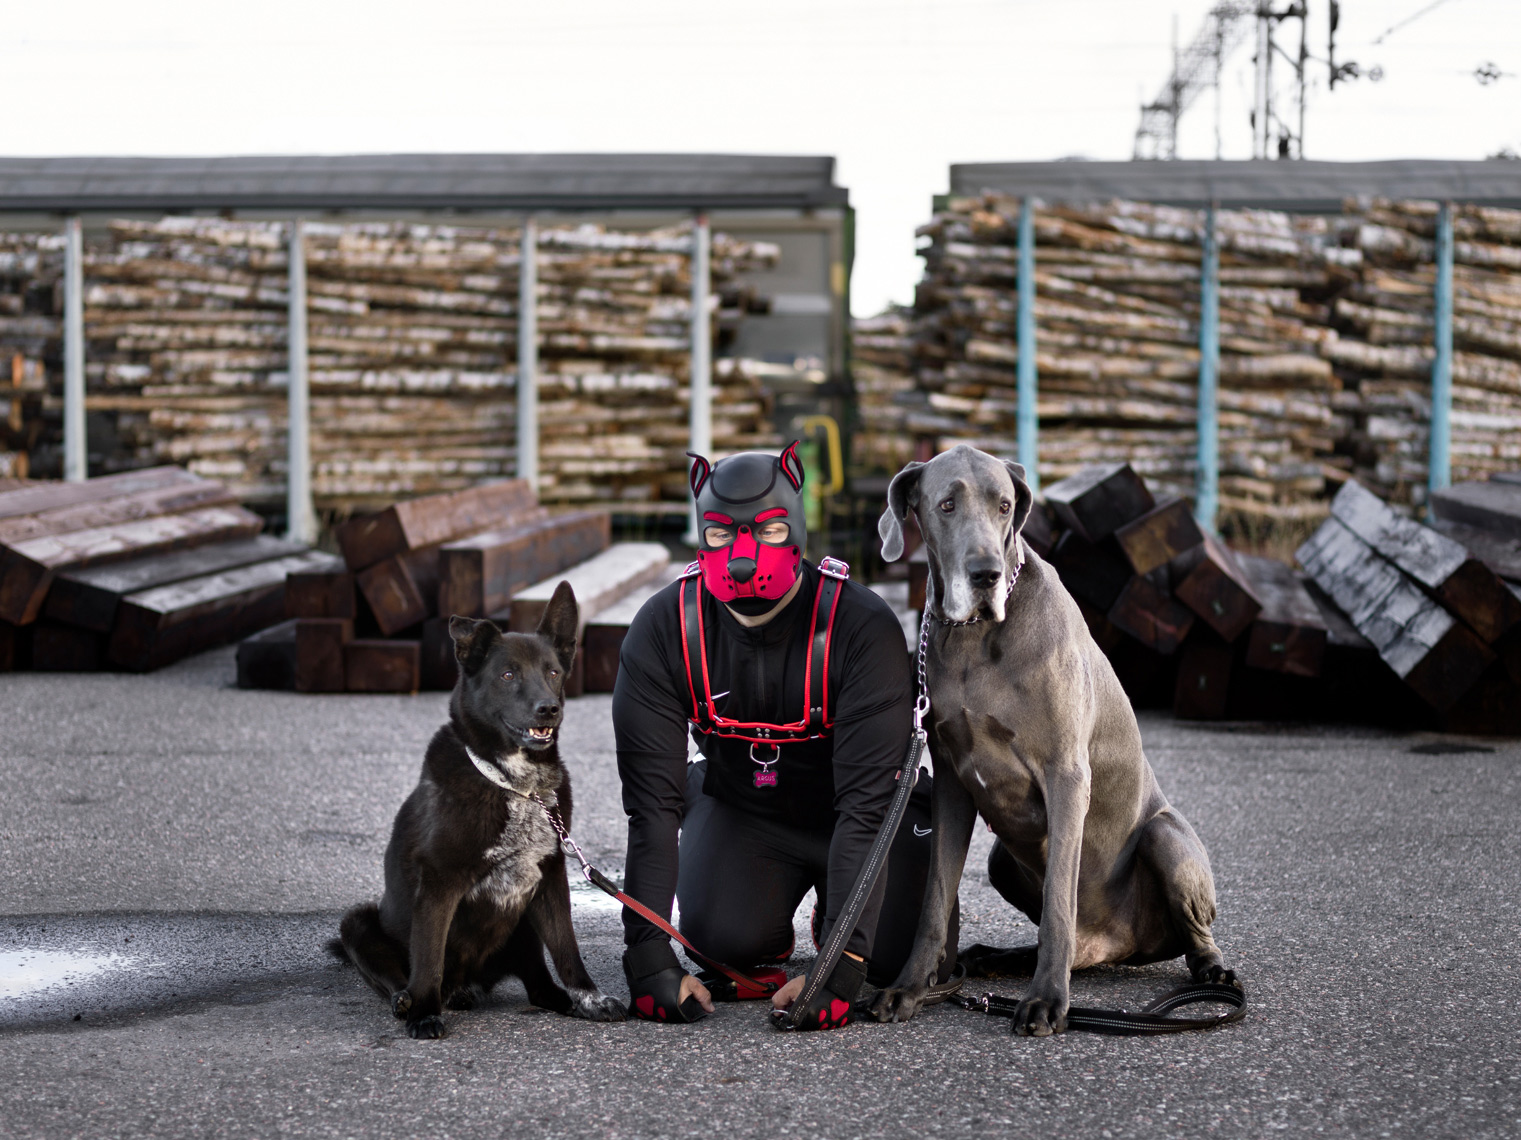 I Love Dogs  // Documentary Photo // Aki-Pekka Sinikoski, Photographer from Helsinki, Finland